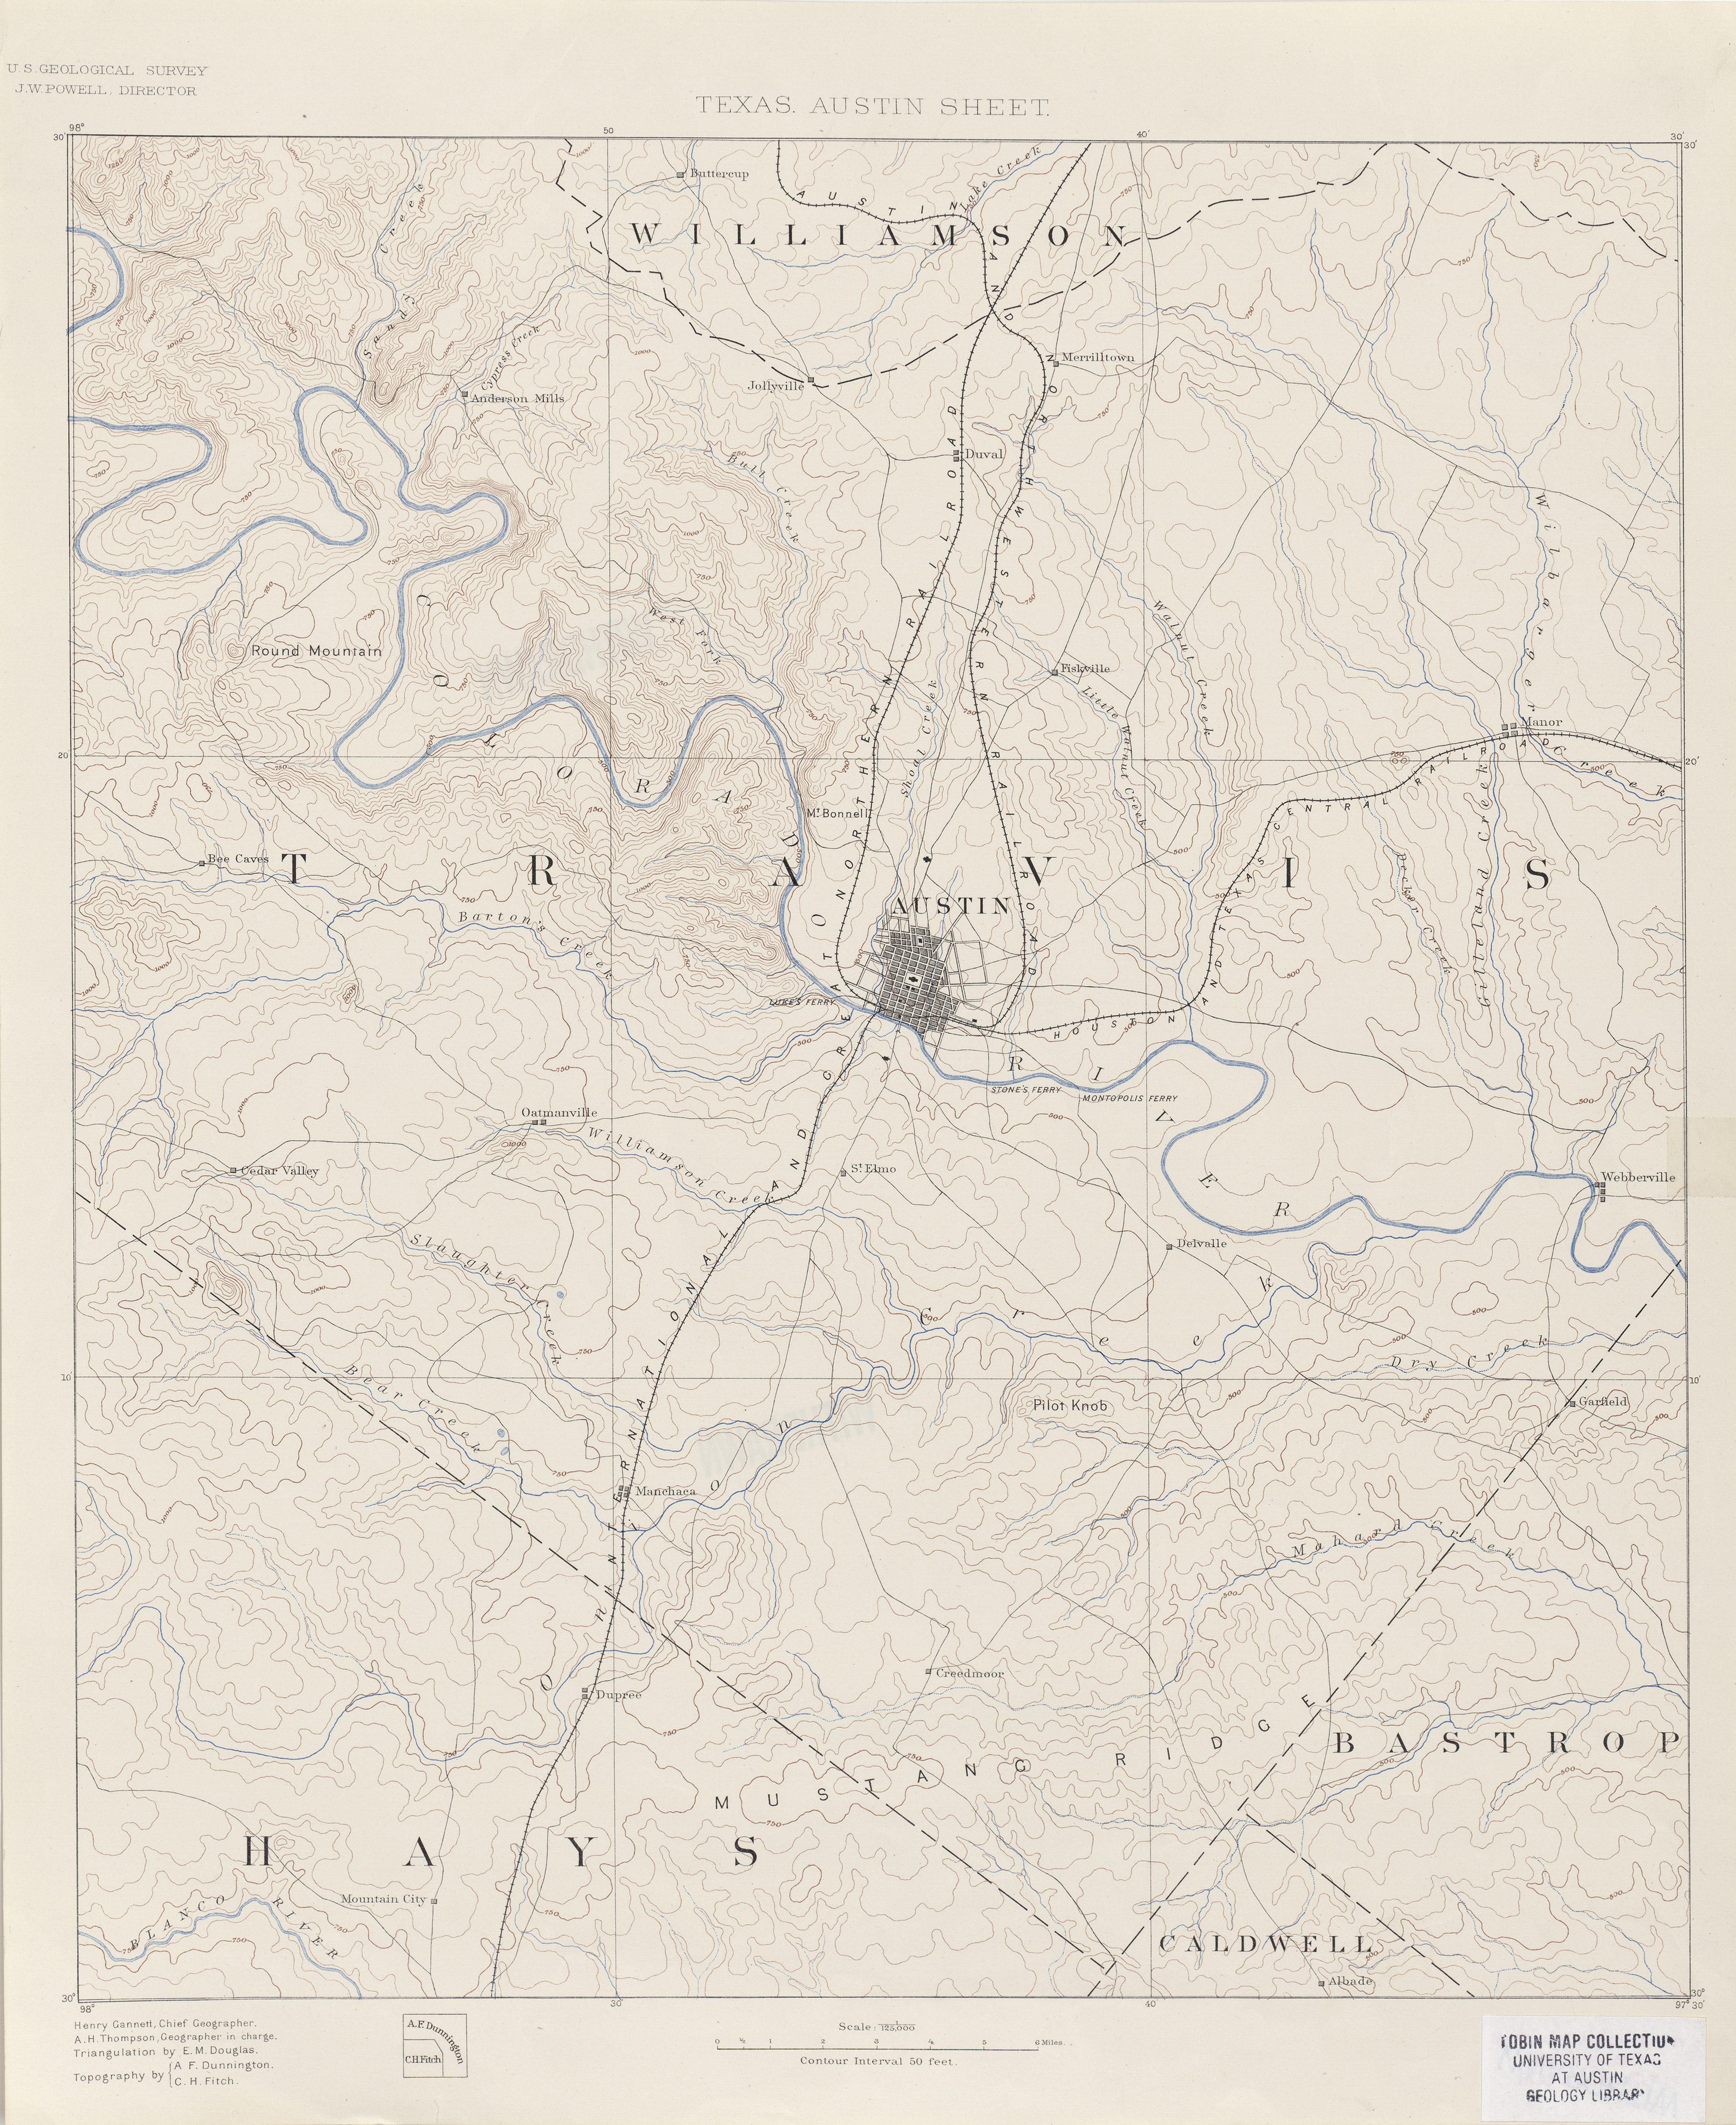 Topographic Map Usgs.Austin Texas Topographic Maps Perry Castaneda Map Collection Ut